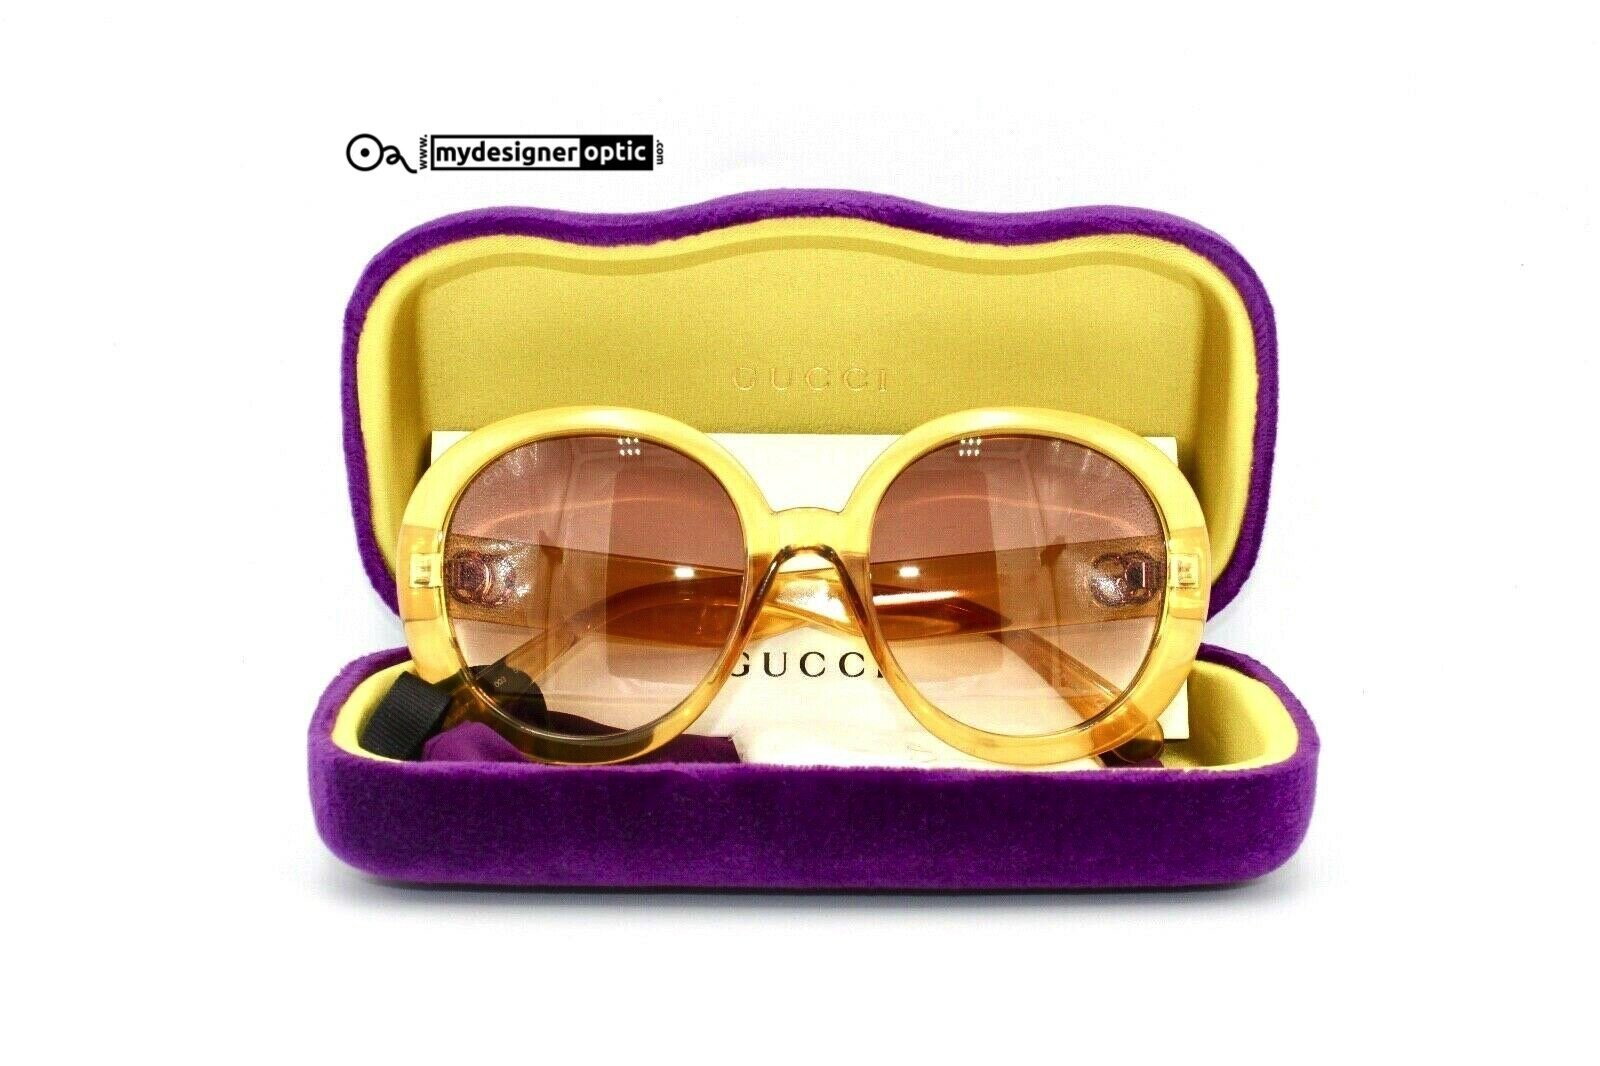 Gucci Sunglasses GG0712S 003 55-21-140 WDF15AYA6J Made in Italy Cat 2 - Mydesigneroptic